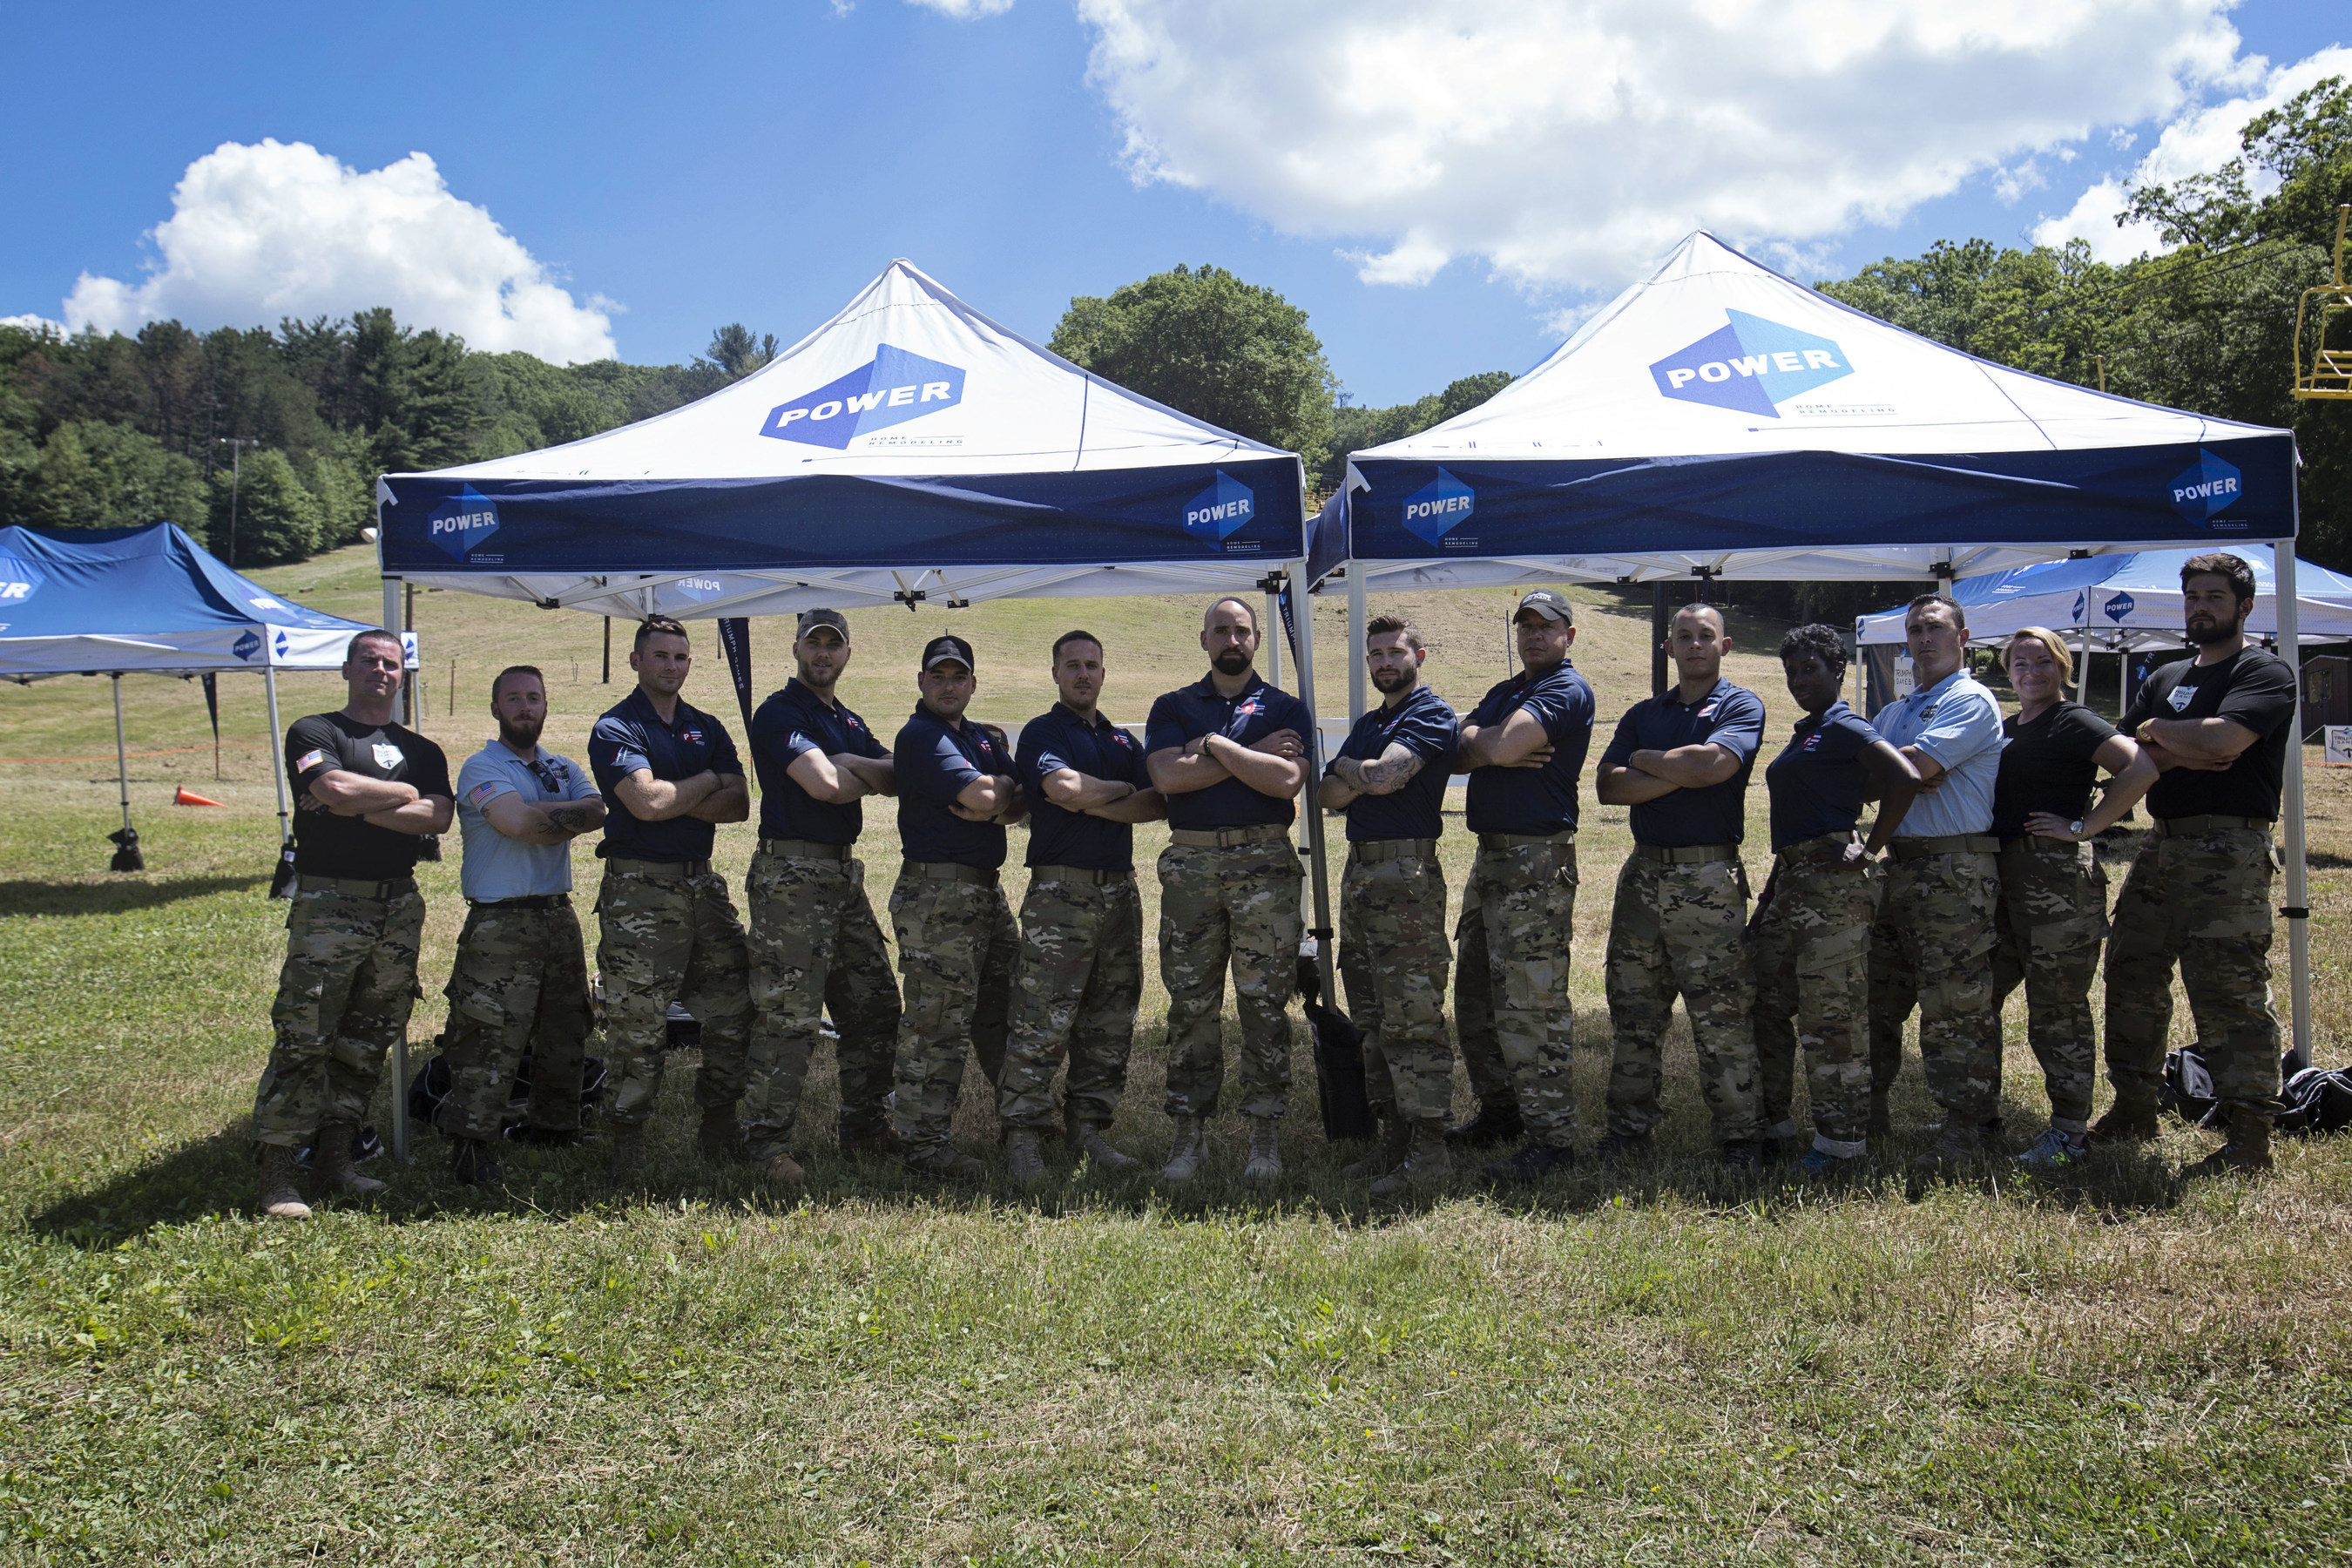 2016 Triumph Games welcome the Power Coach Team, all military veterans, as they join the athletes for competition strategy and support.